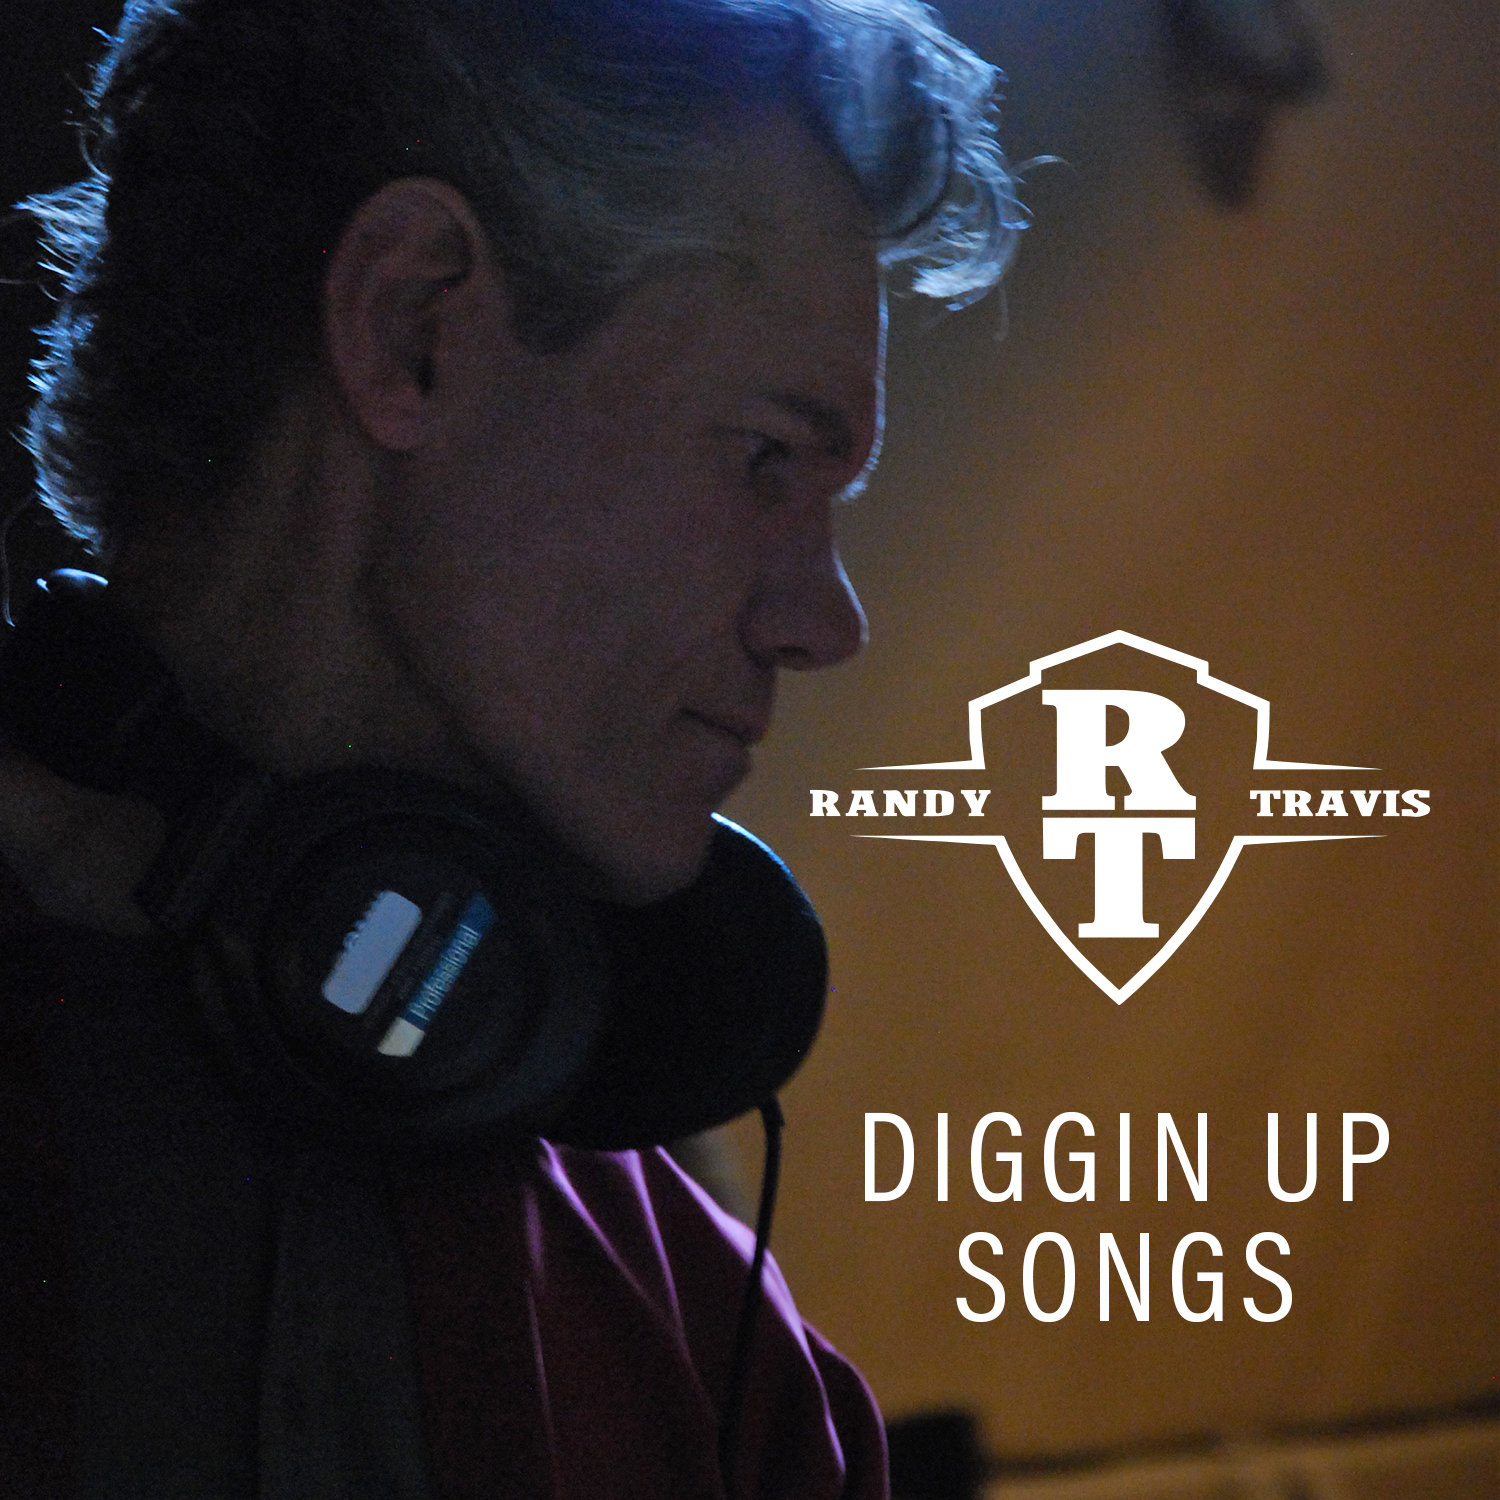 Randy Travis adds Scotty McCreery, James Dupre, Lee Brice, Chris Young and Joe Nichols To Diggin' Up Songs new music spotlight